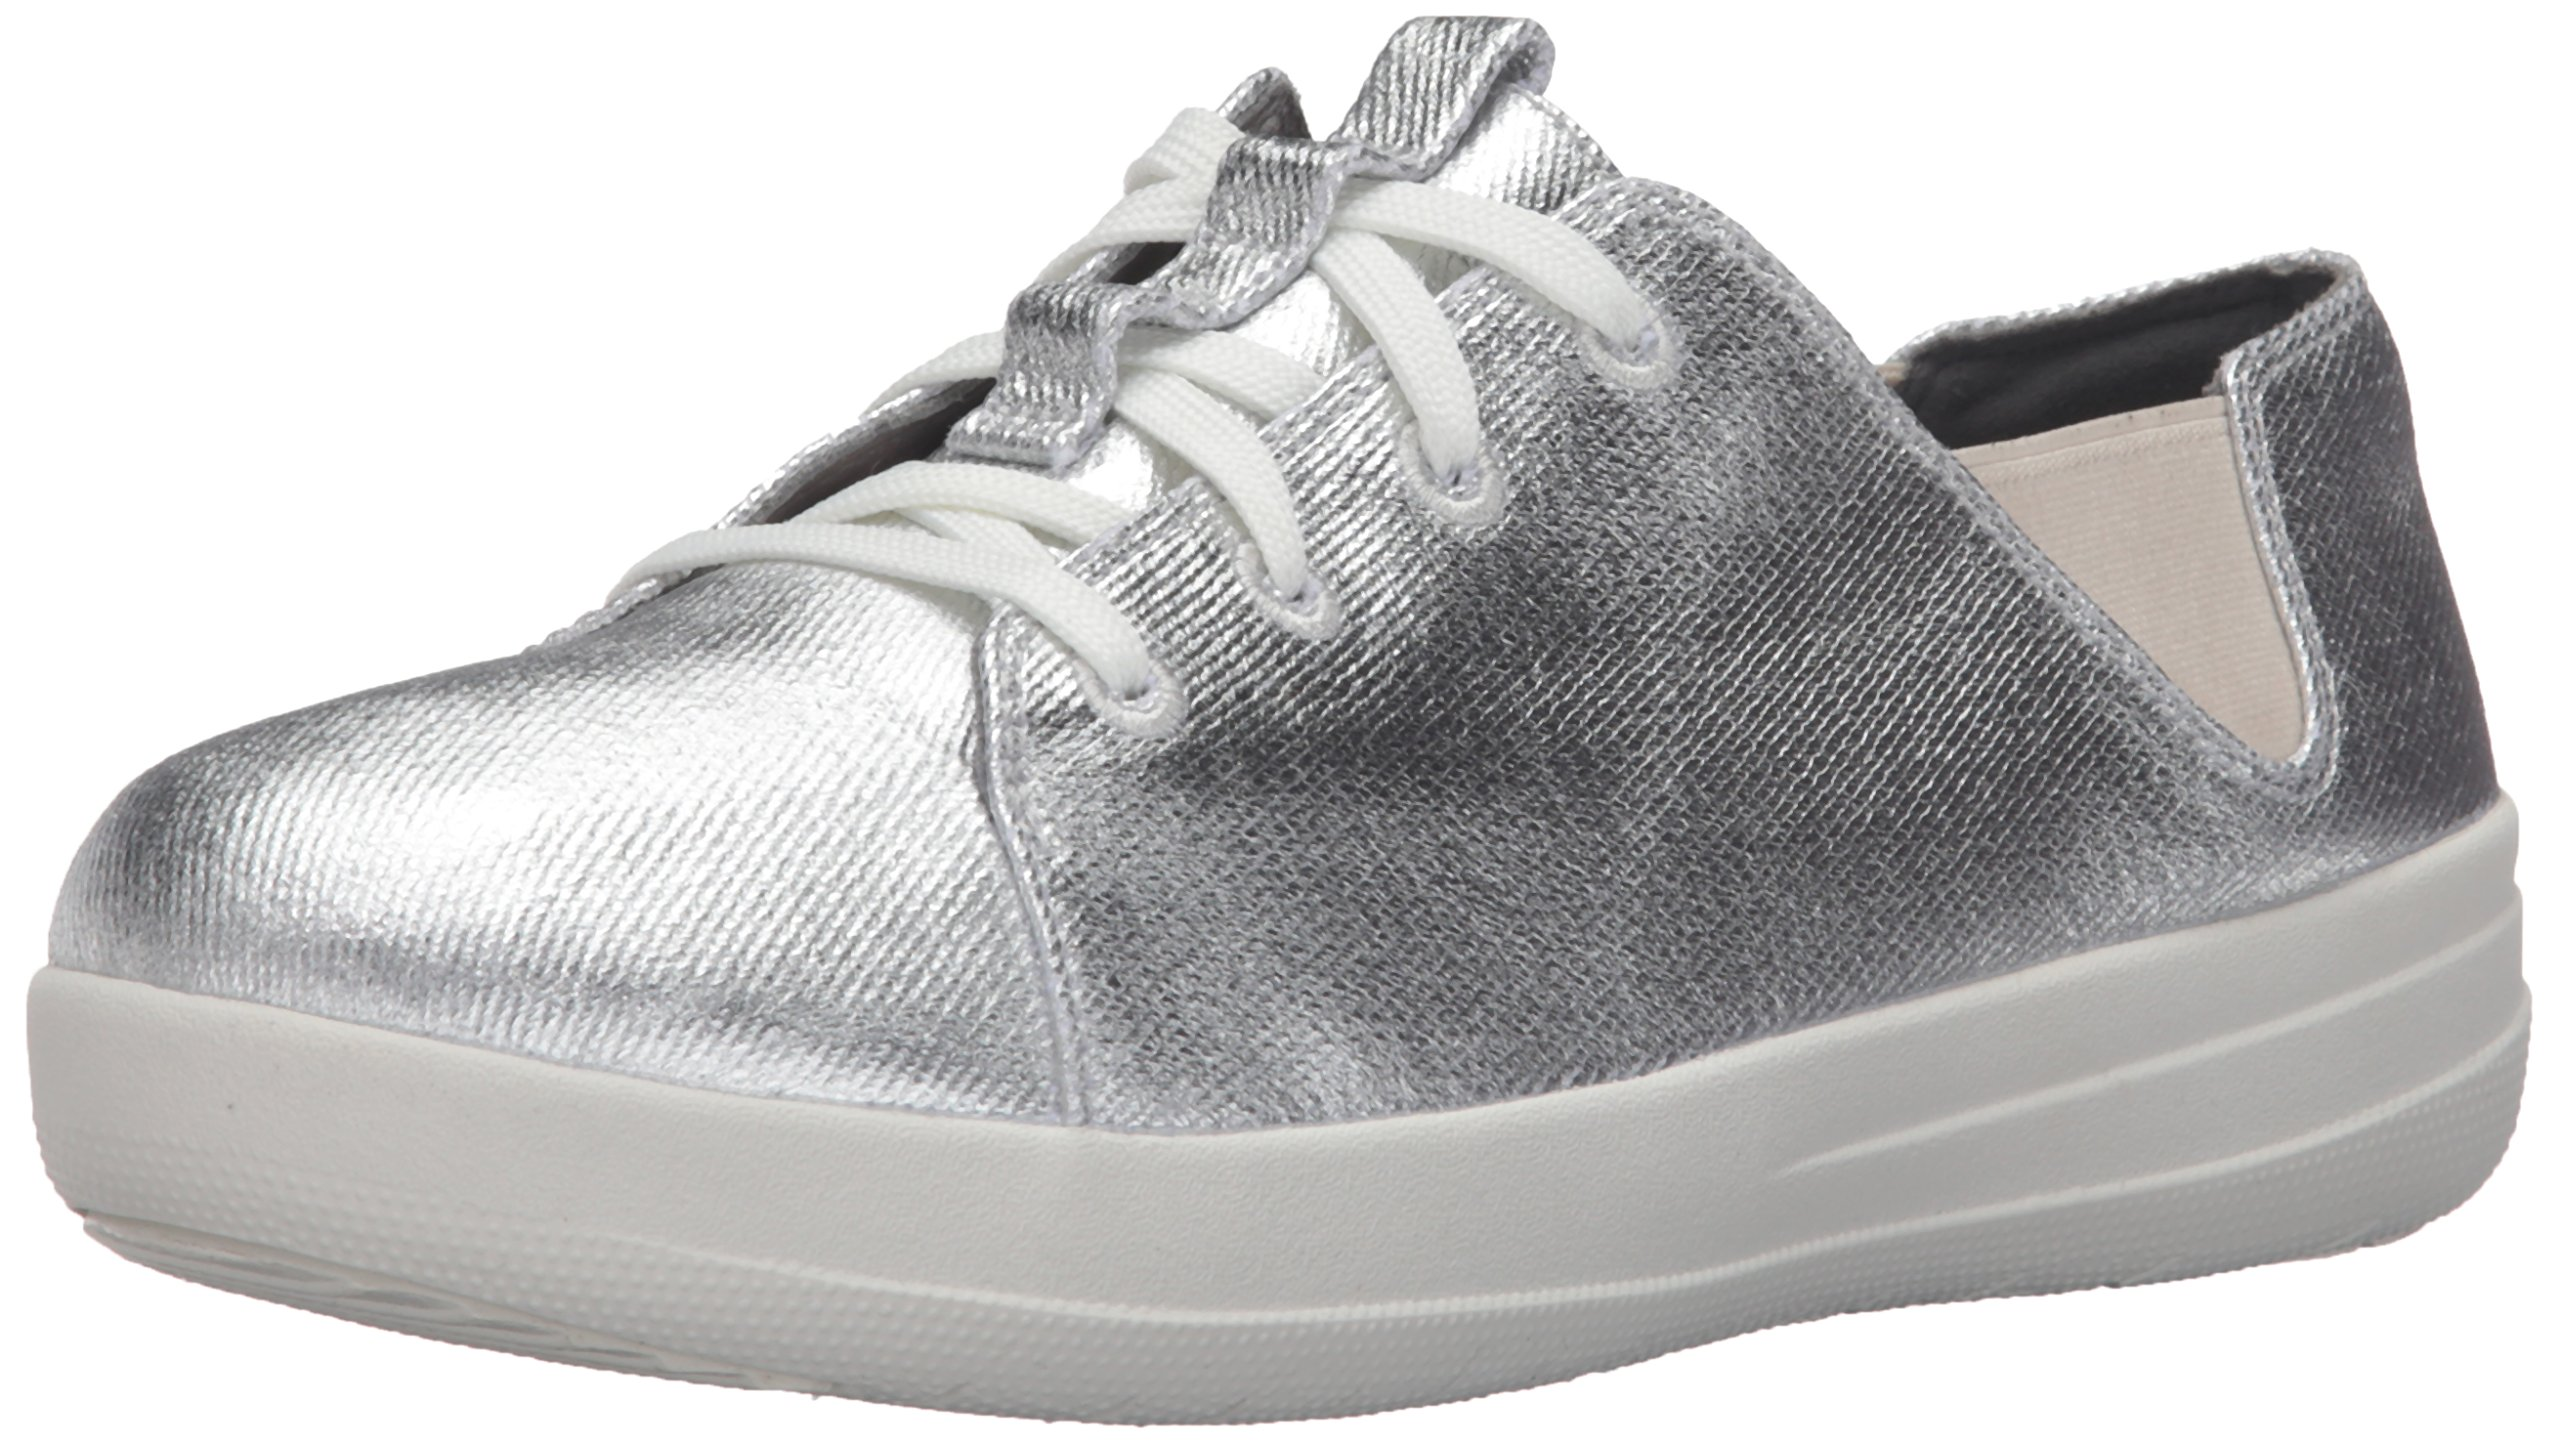 FitFlop Women's F-Sporty Laceup Fashion Sneaker, Silver, 10 M US by FitFlop (Image #1)